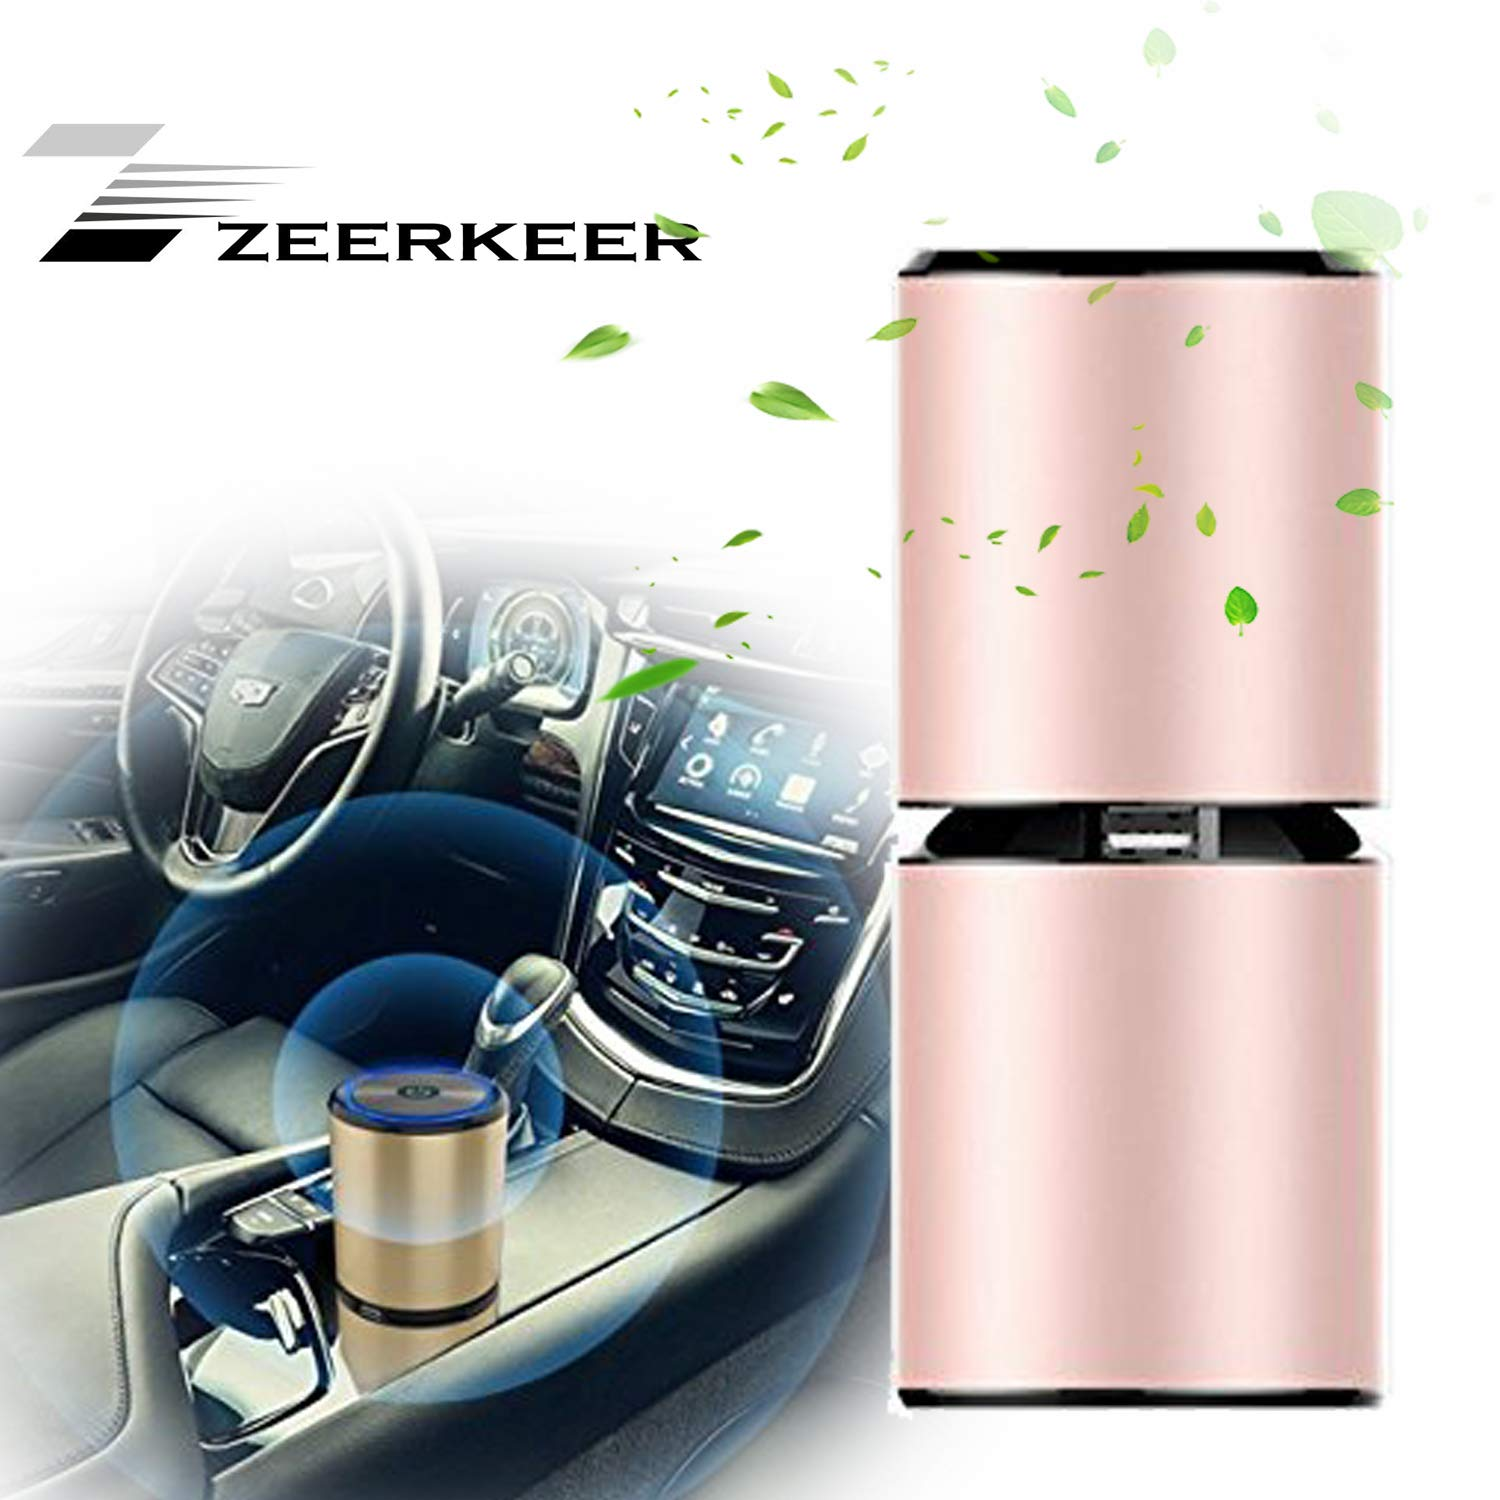 Car Air Purifier Ionizer, ZEERKEER Air Freshener and Odor Eliminator with Dual USB Charging Ports, Remove Cigarette Cigar Wildfire Smoke, Bad Odors, Pets Smells(rose) by ZEERKEER (Image #1)